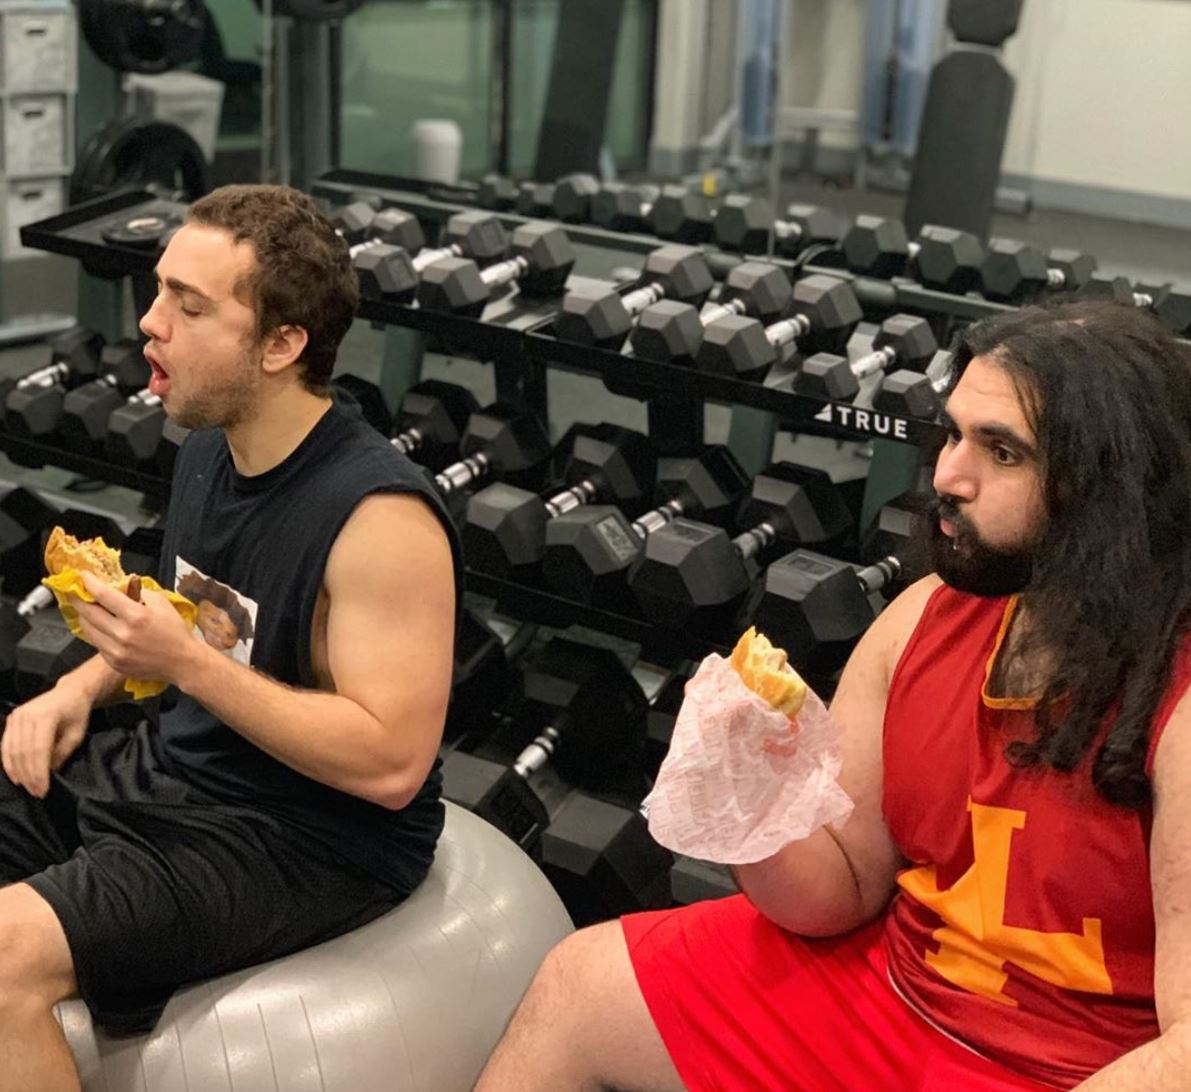 Esfand and Mizkif eat burgers at the gym.